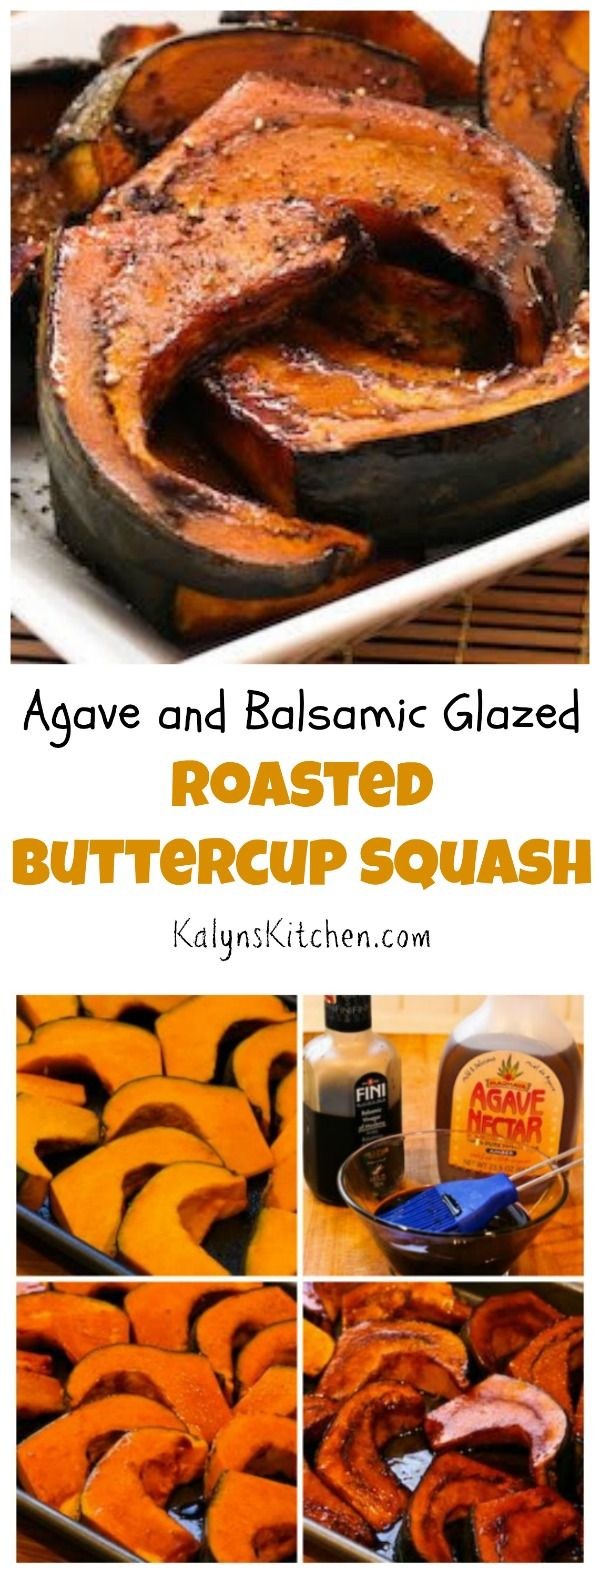 I first made this Agave and Balsamic Glazed and Roasted Buttercup Squash back in 2008 and it's still one of my favorite winter squash recipes! [found on KalynsKitchen.com]: